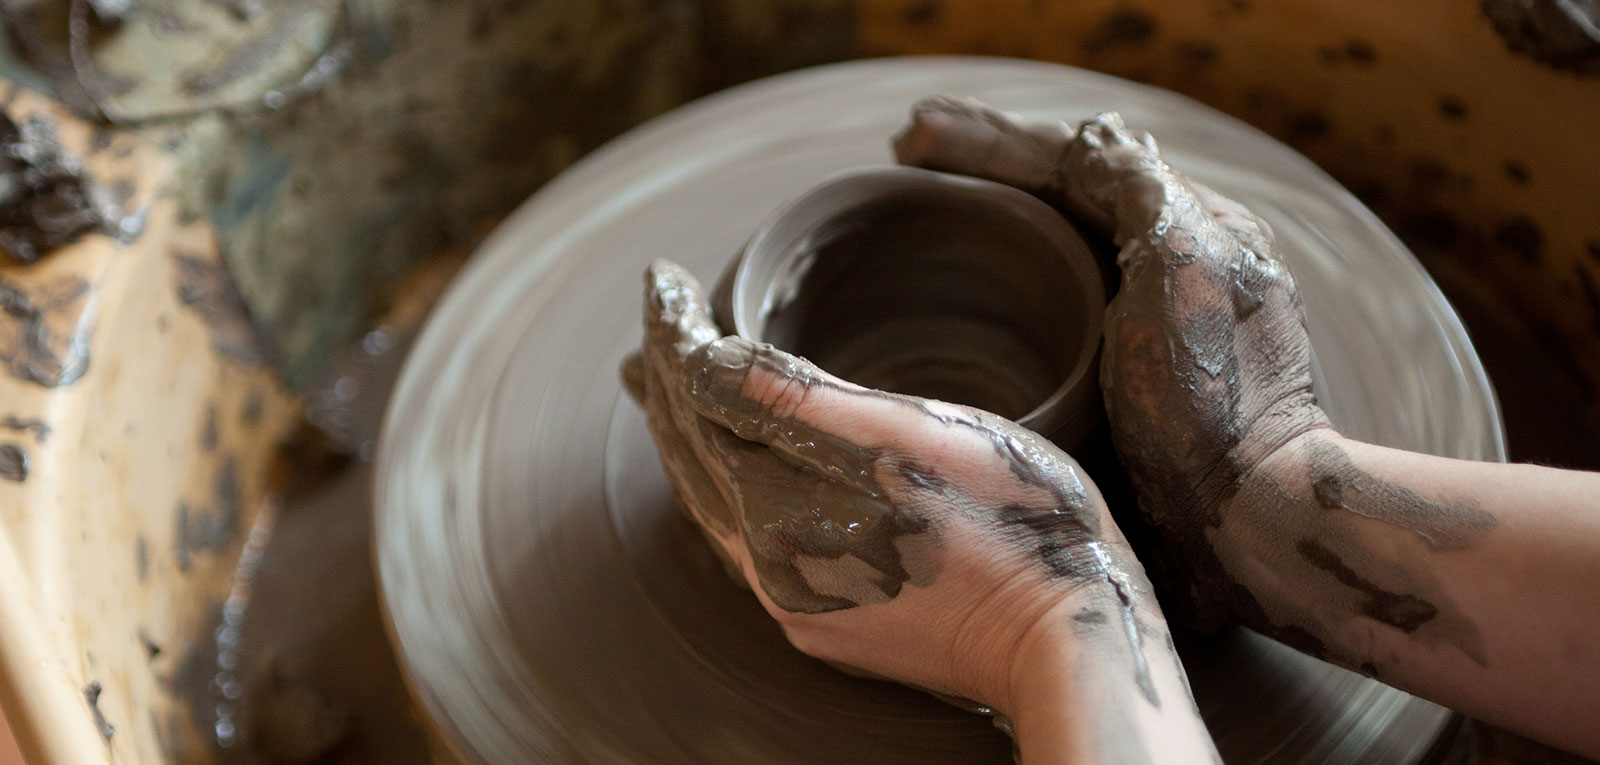 Image of someone doing pottery